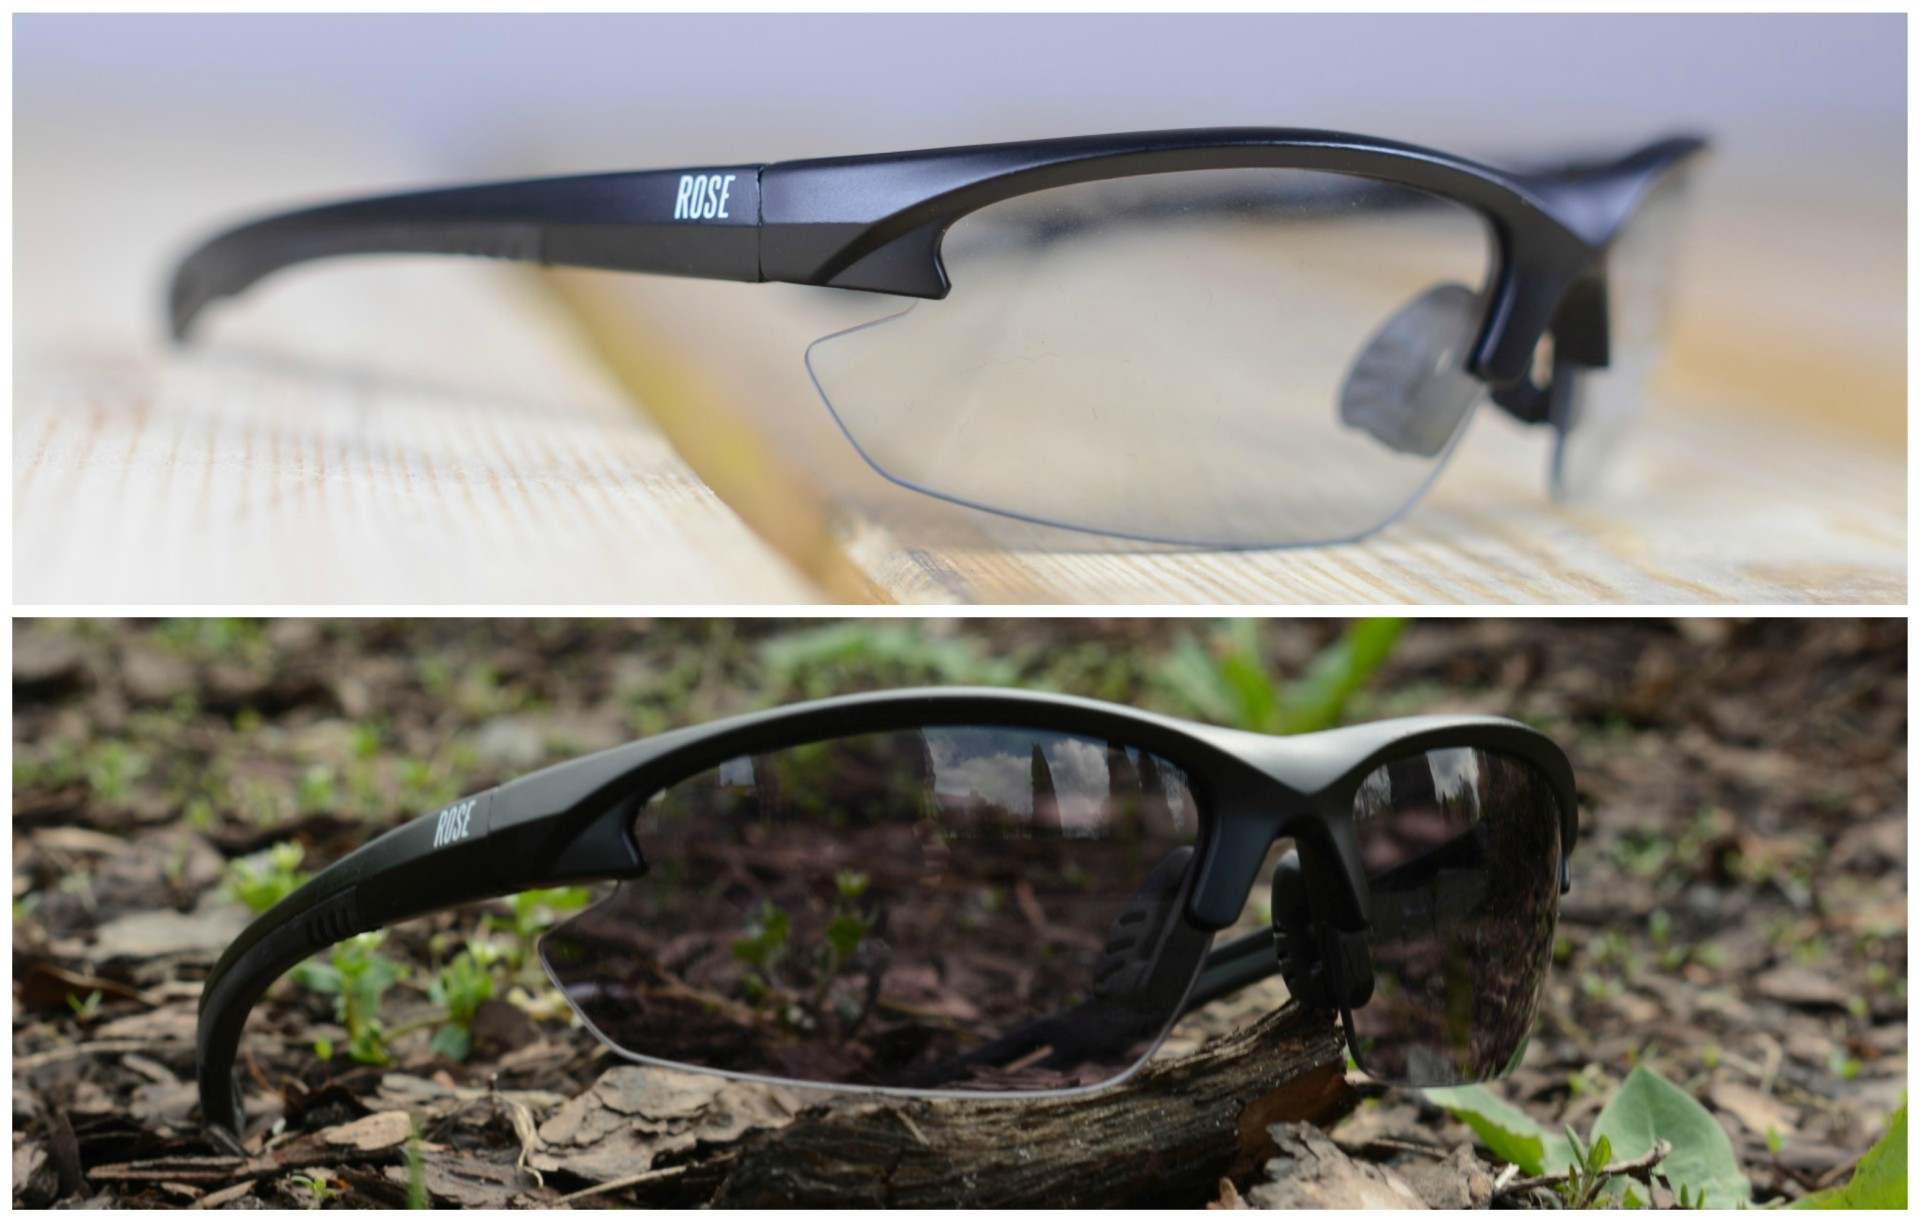 Okulary Rose PS 03 photochromic [test]